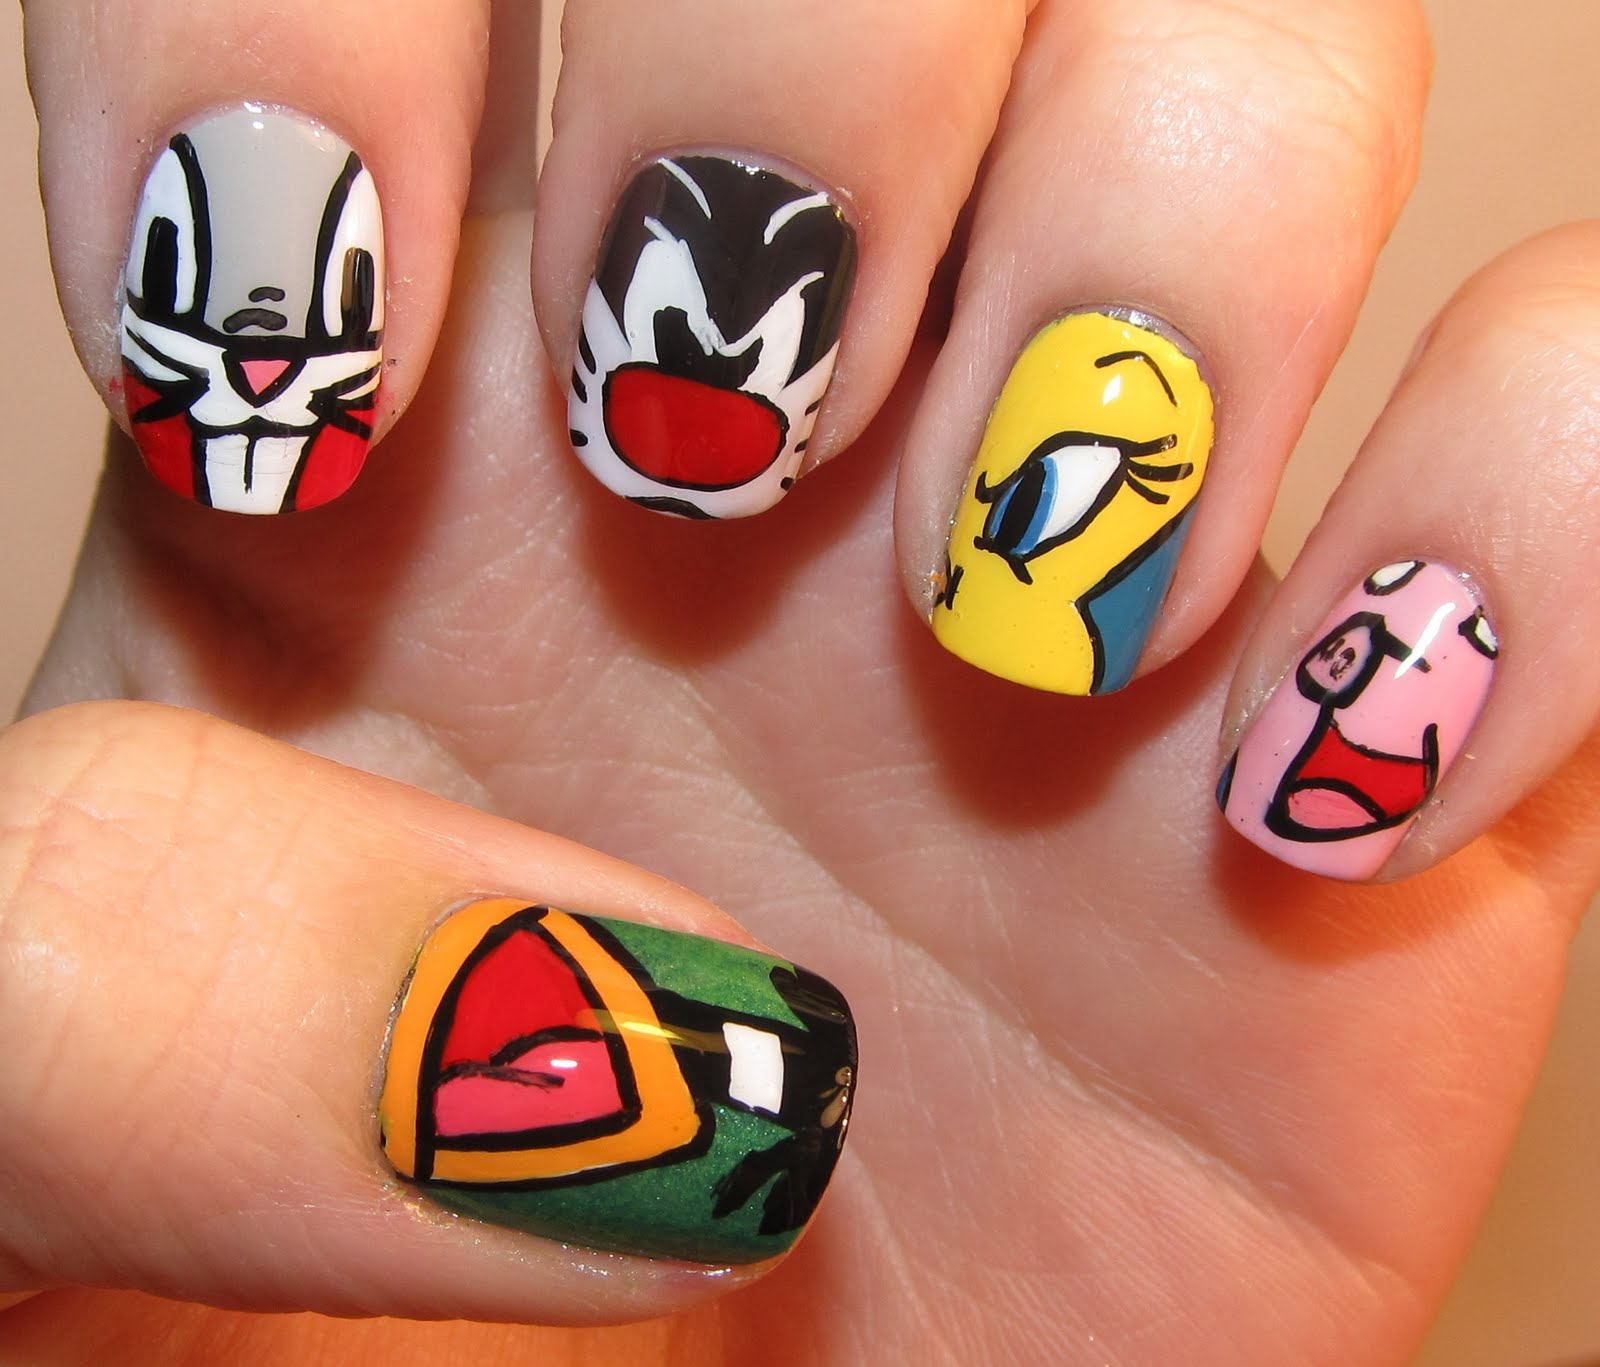 Todo Unhas: Uas de Dibujos Animados - Cartoon Nail Art ...